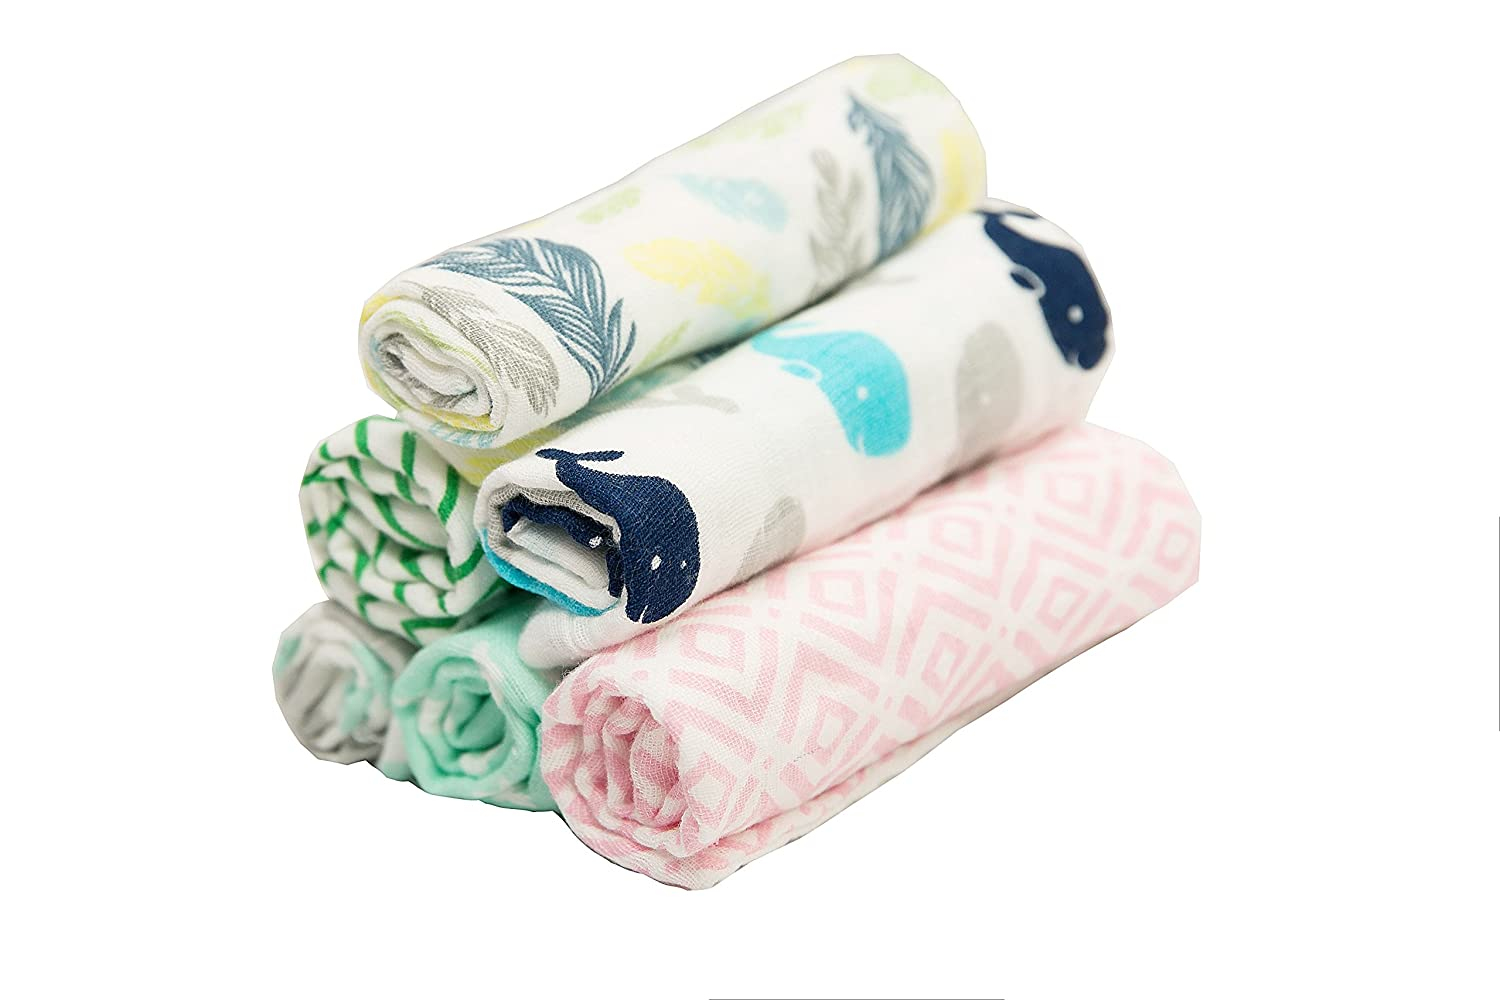 BWinka 6 Pack Unique Design encrypt 100/% Muslin Soft Newborn Baby Face Towel and Muslin Washcloth for Sensitive Skin with Hook Best for Shower Gift 12x12 Reusable Wipes